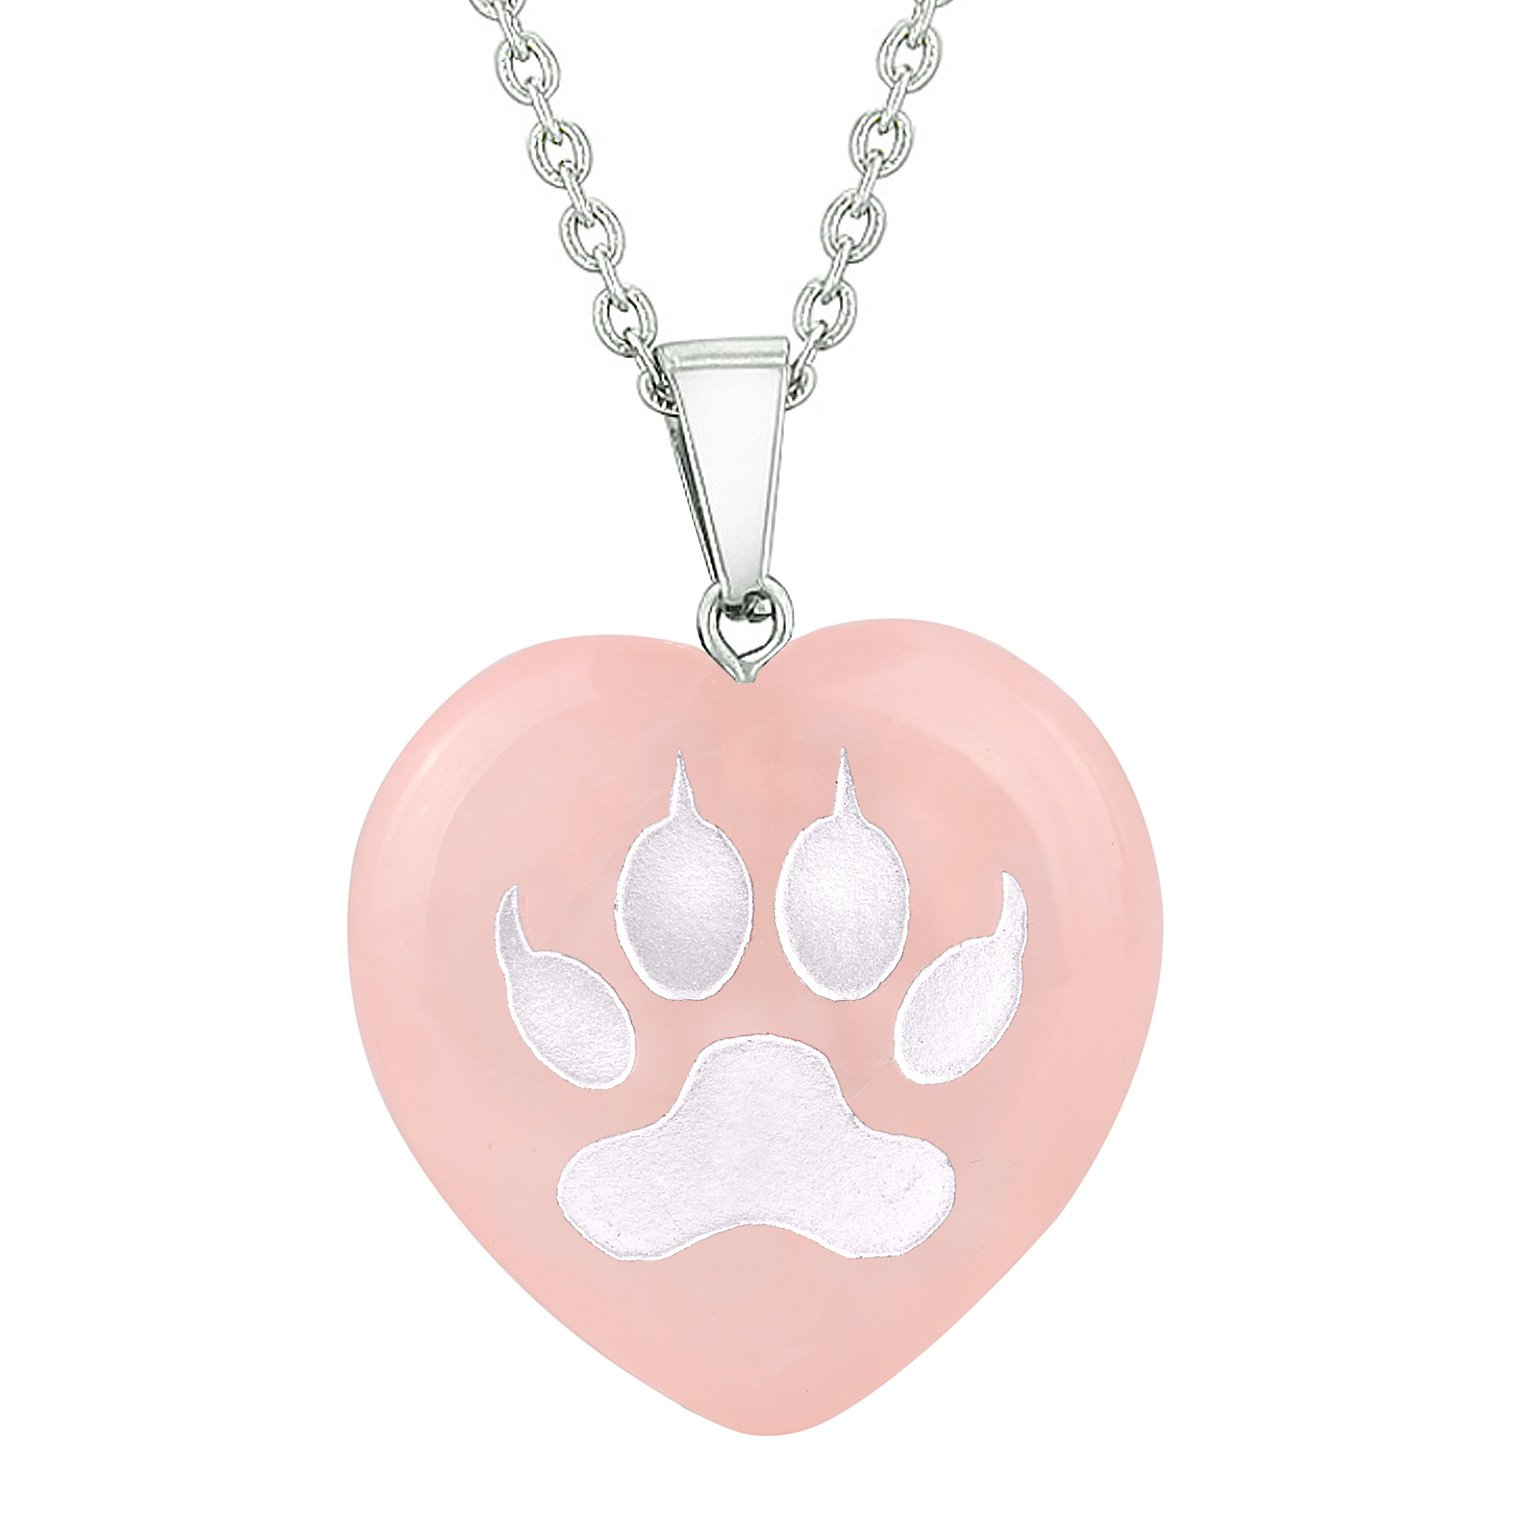 Amulet Wolf Paw Courage Magical Powers Protection Energy Rose Quartz Puffy Heart Pendant Necklace